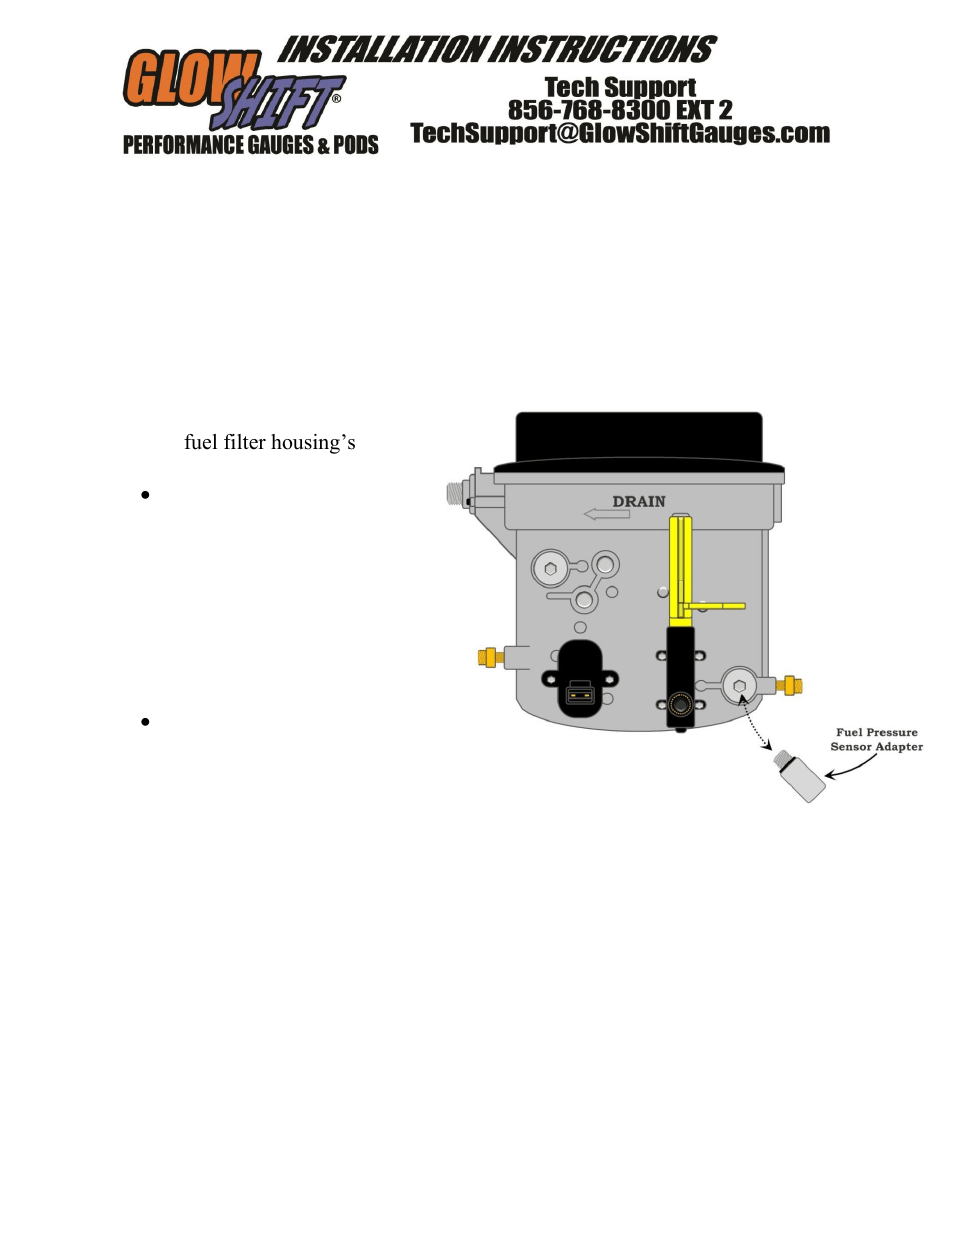 hight resolution of glowshift ford super duty 7 3 powerstroke fuel pressure sensor adapter user manual 1 page